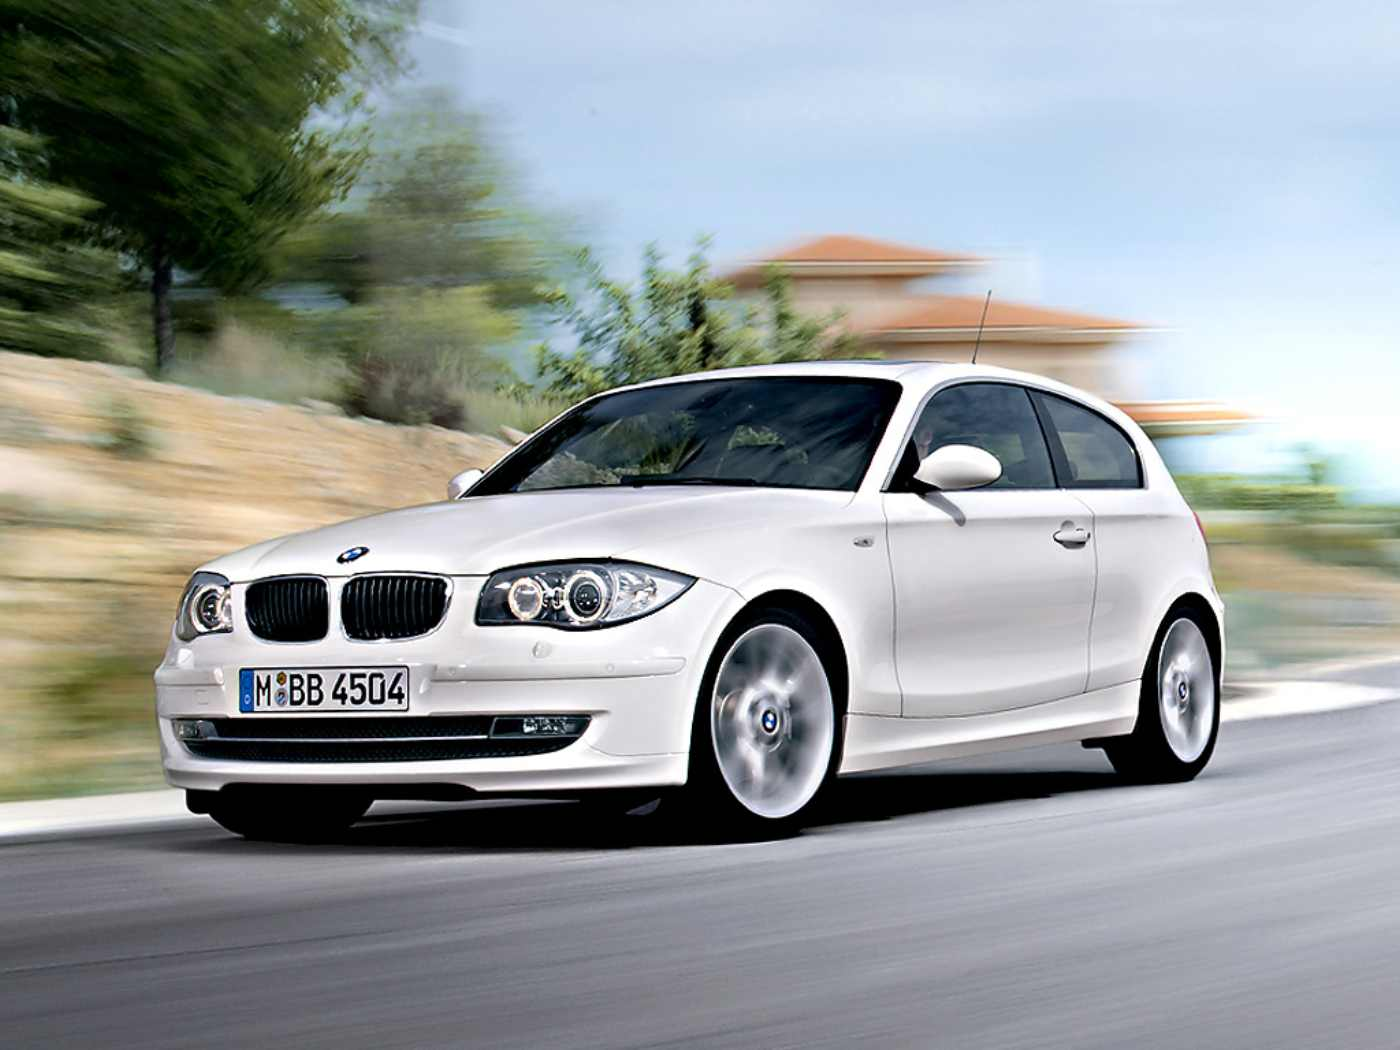 bmw photographs bmw technical bmw cars. Black Bedroom Furniture Sets. Home Design Ideas